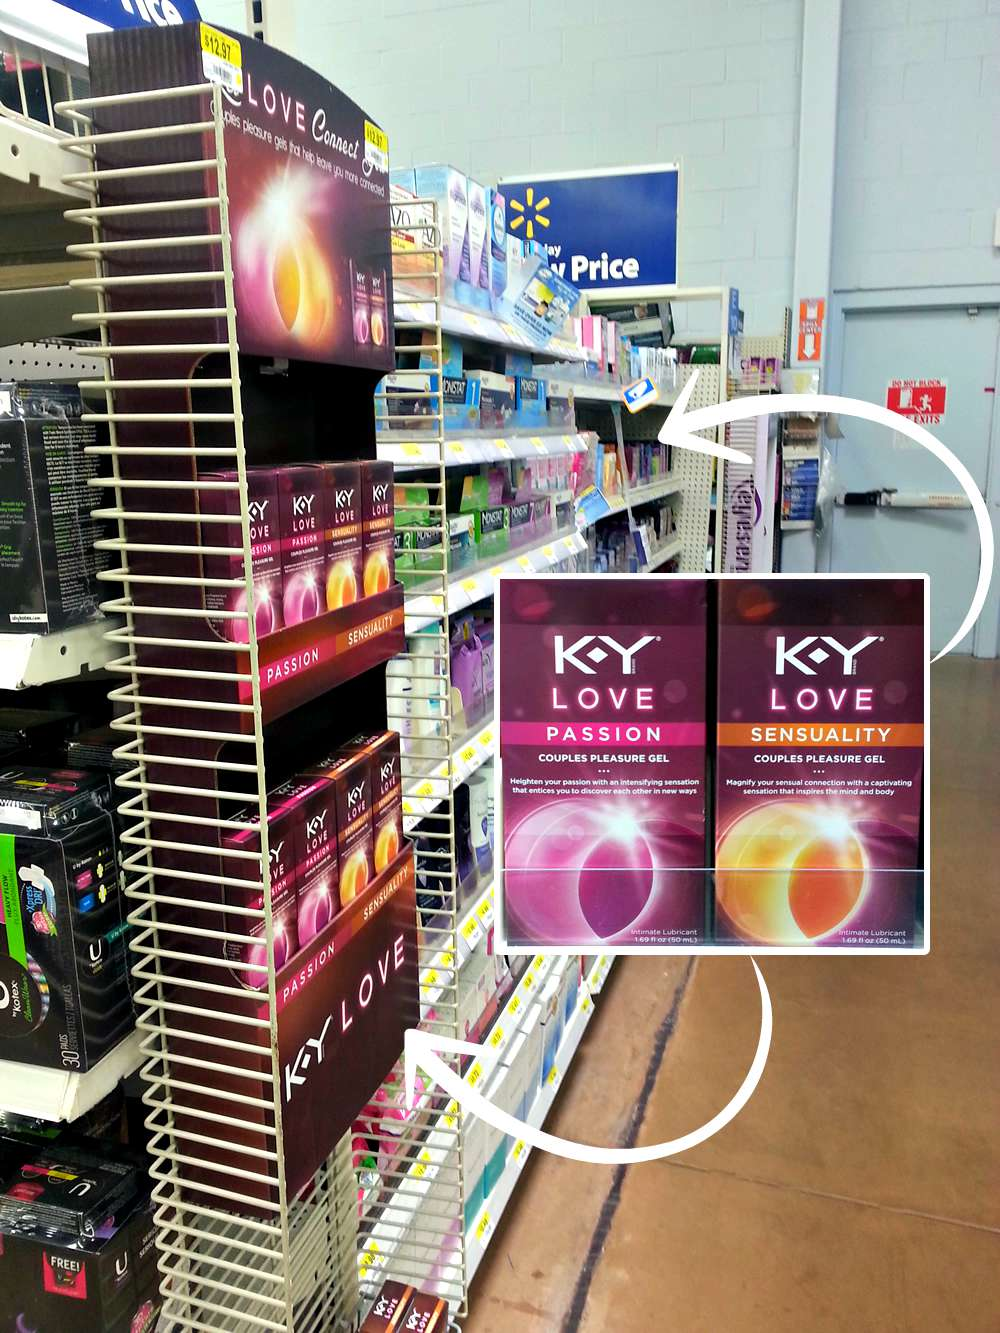 K-Y Love Passion & Sensuality in aisle at Walmart #KYTrySomethingNew #cbias